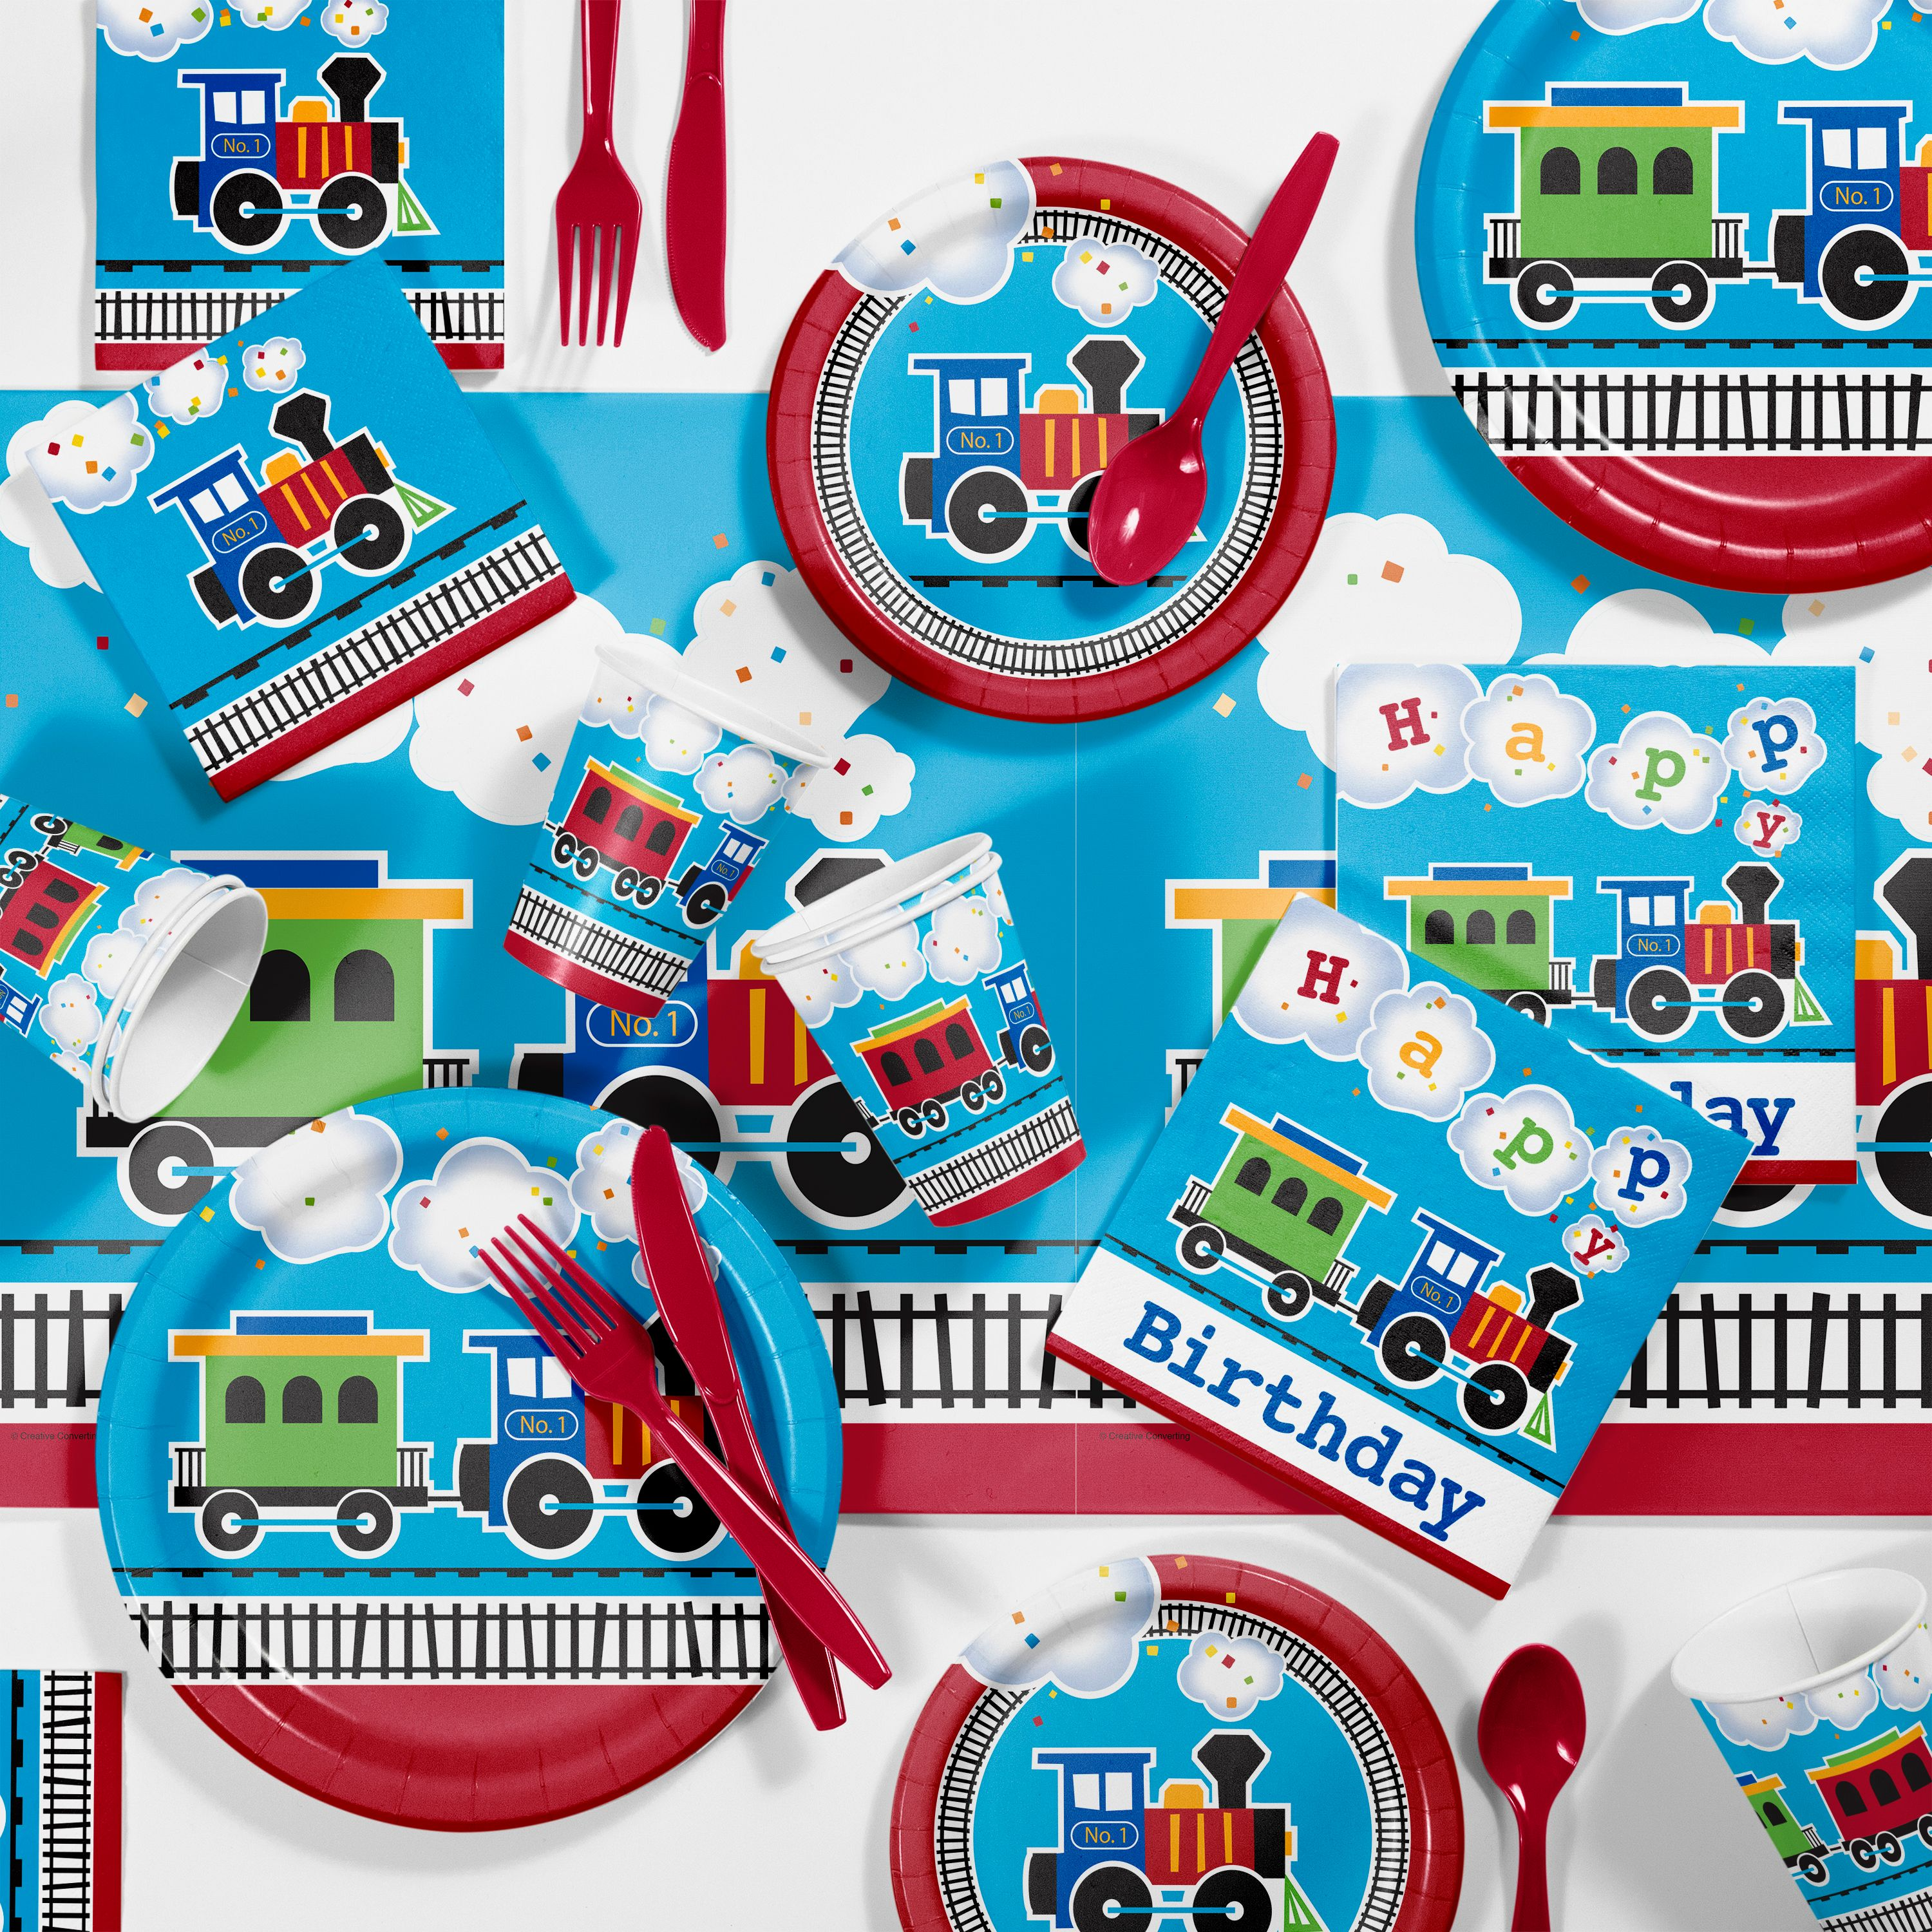 All Aboard Train Birthday Party Supplies Kit